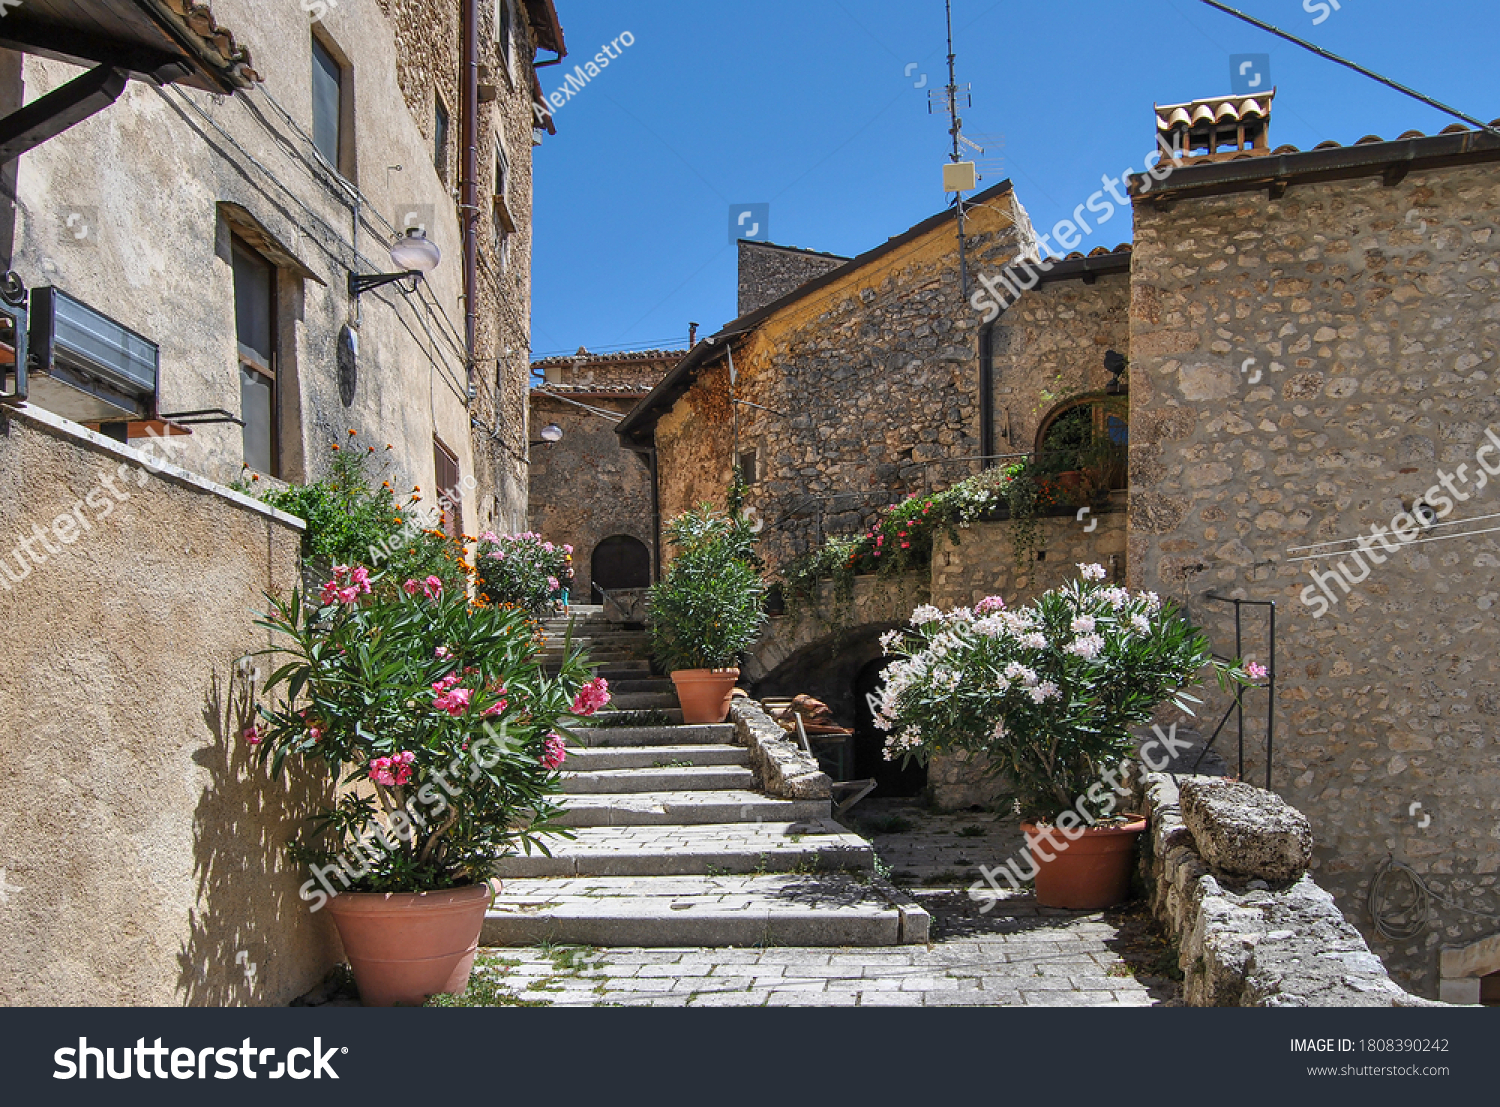 An alley of Santo Stefano di Sessanio, ancient hill town in the province of L'Aquila, Abruzzo region, Italy, located in the Gran Sasso e Monti della Laga National Park. #1808390242